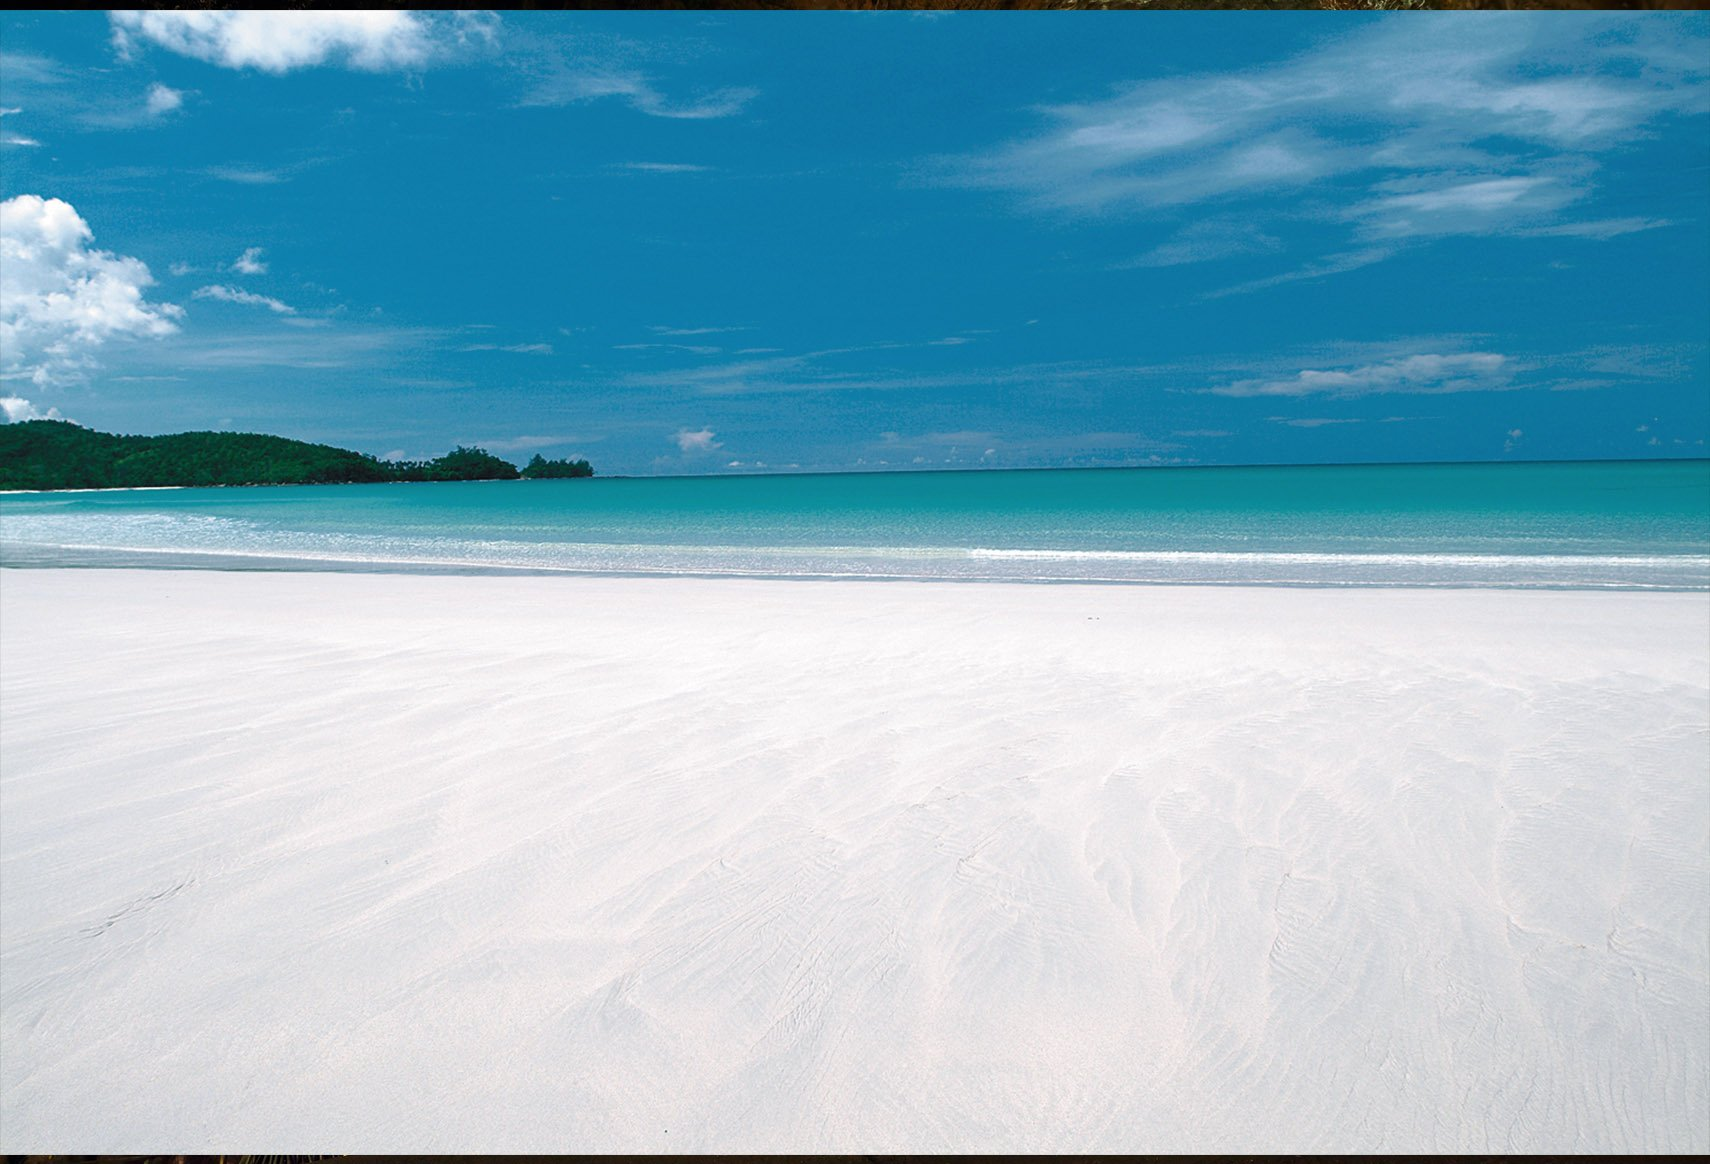 One of the most beautiful beaches in Borneo